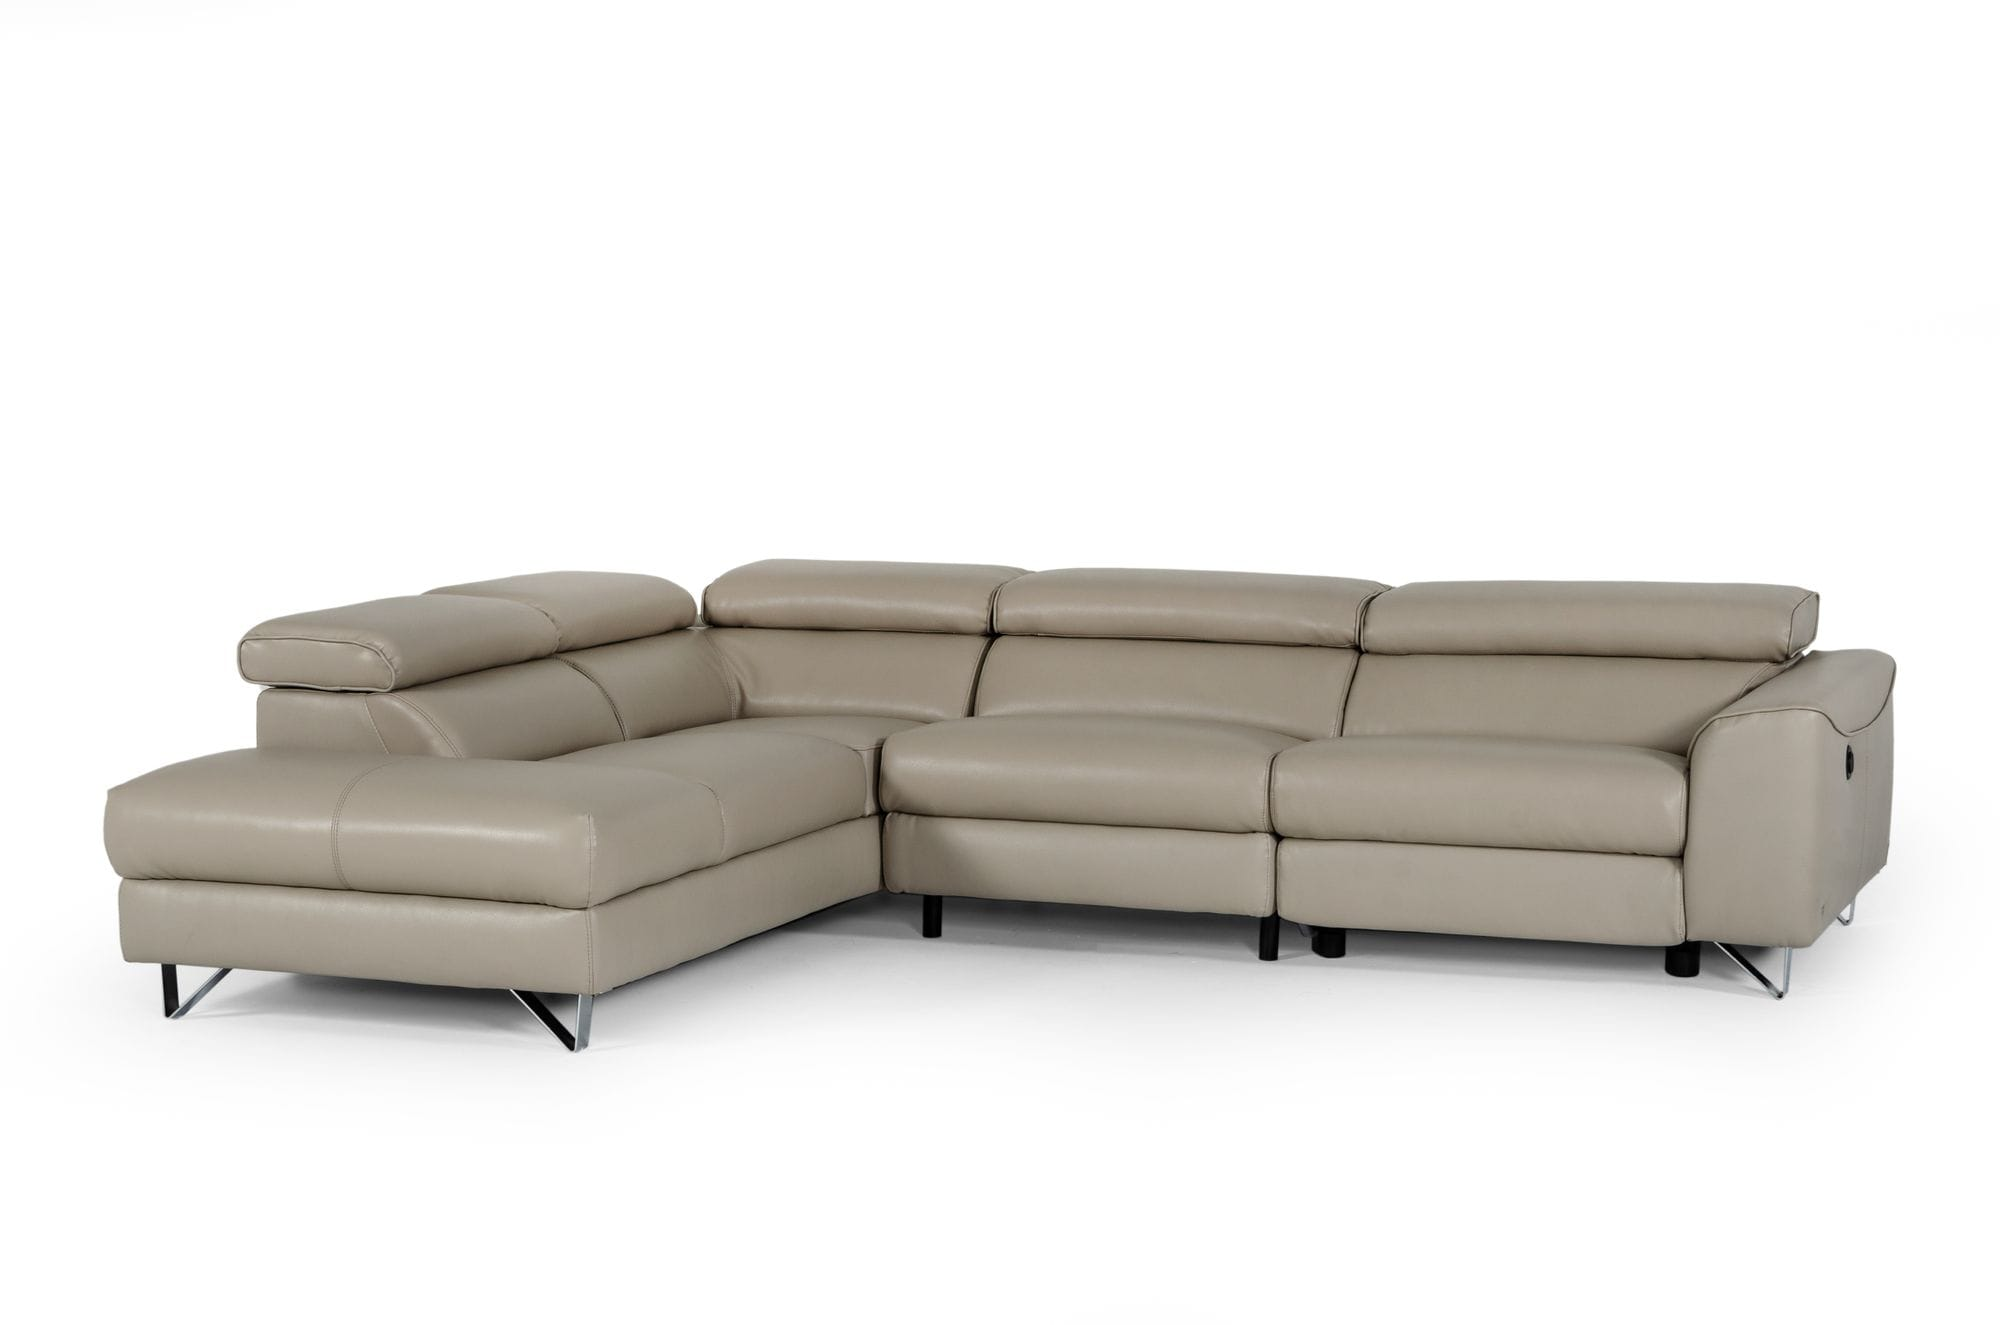 VIG Furniture Divani Casa Versa Modern Light Taupe Teco-Leather LAF Chaise Sectional with Recliner